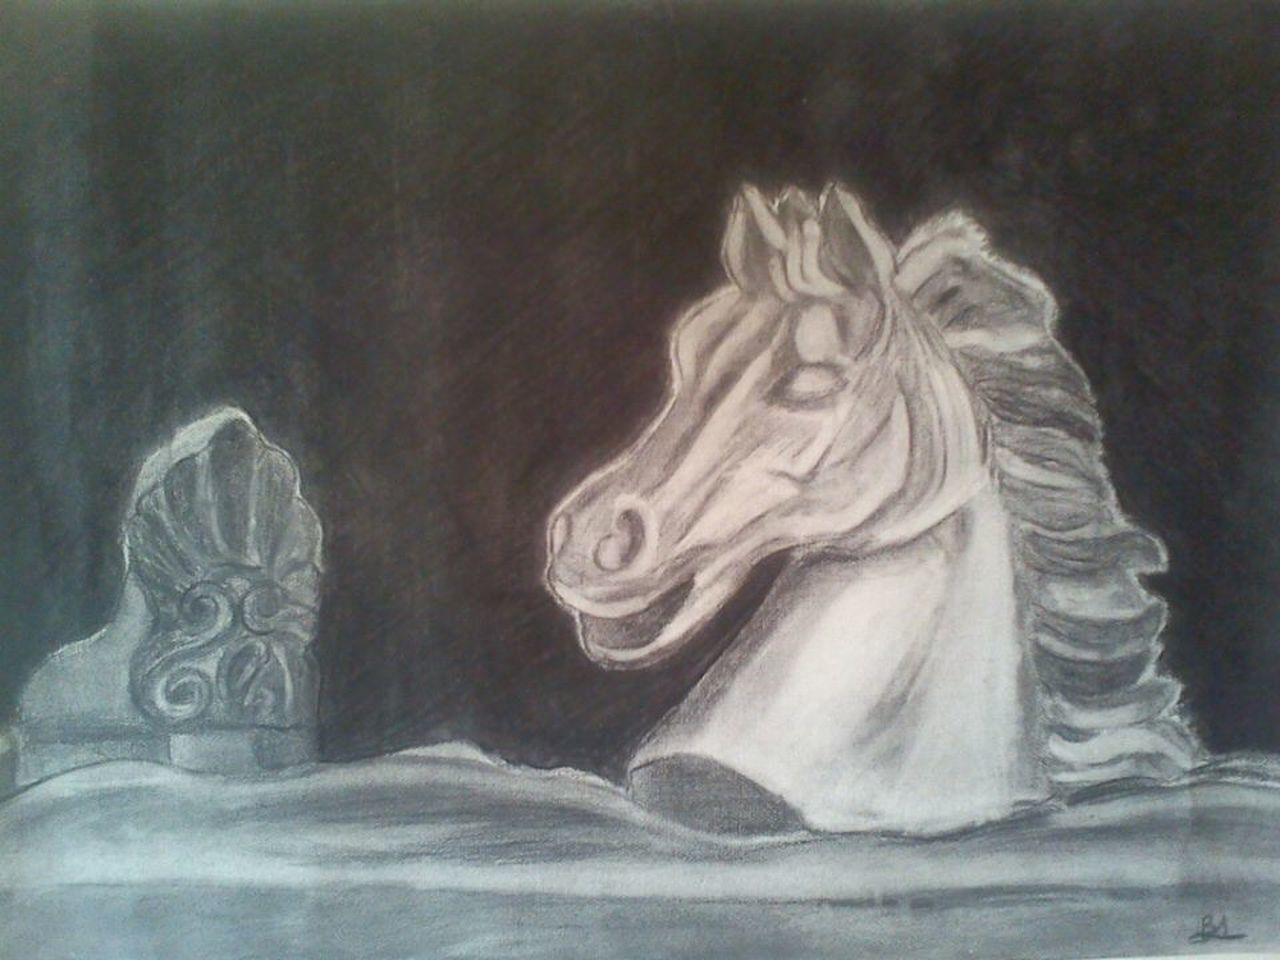 Black And White Galloping Dreams Headman Hope Horse Mane Rider Running White Horse Wind